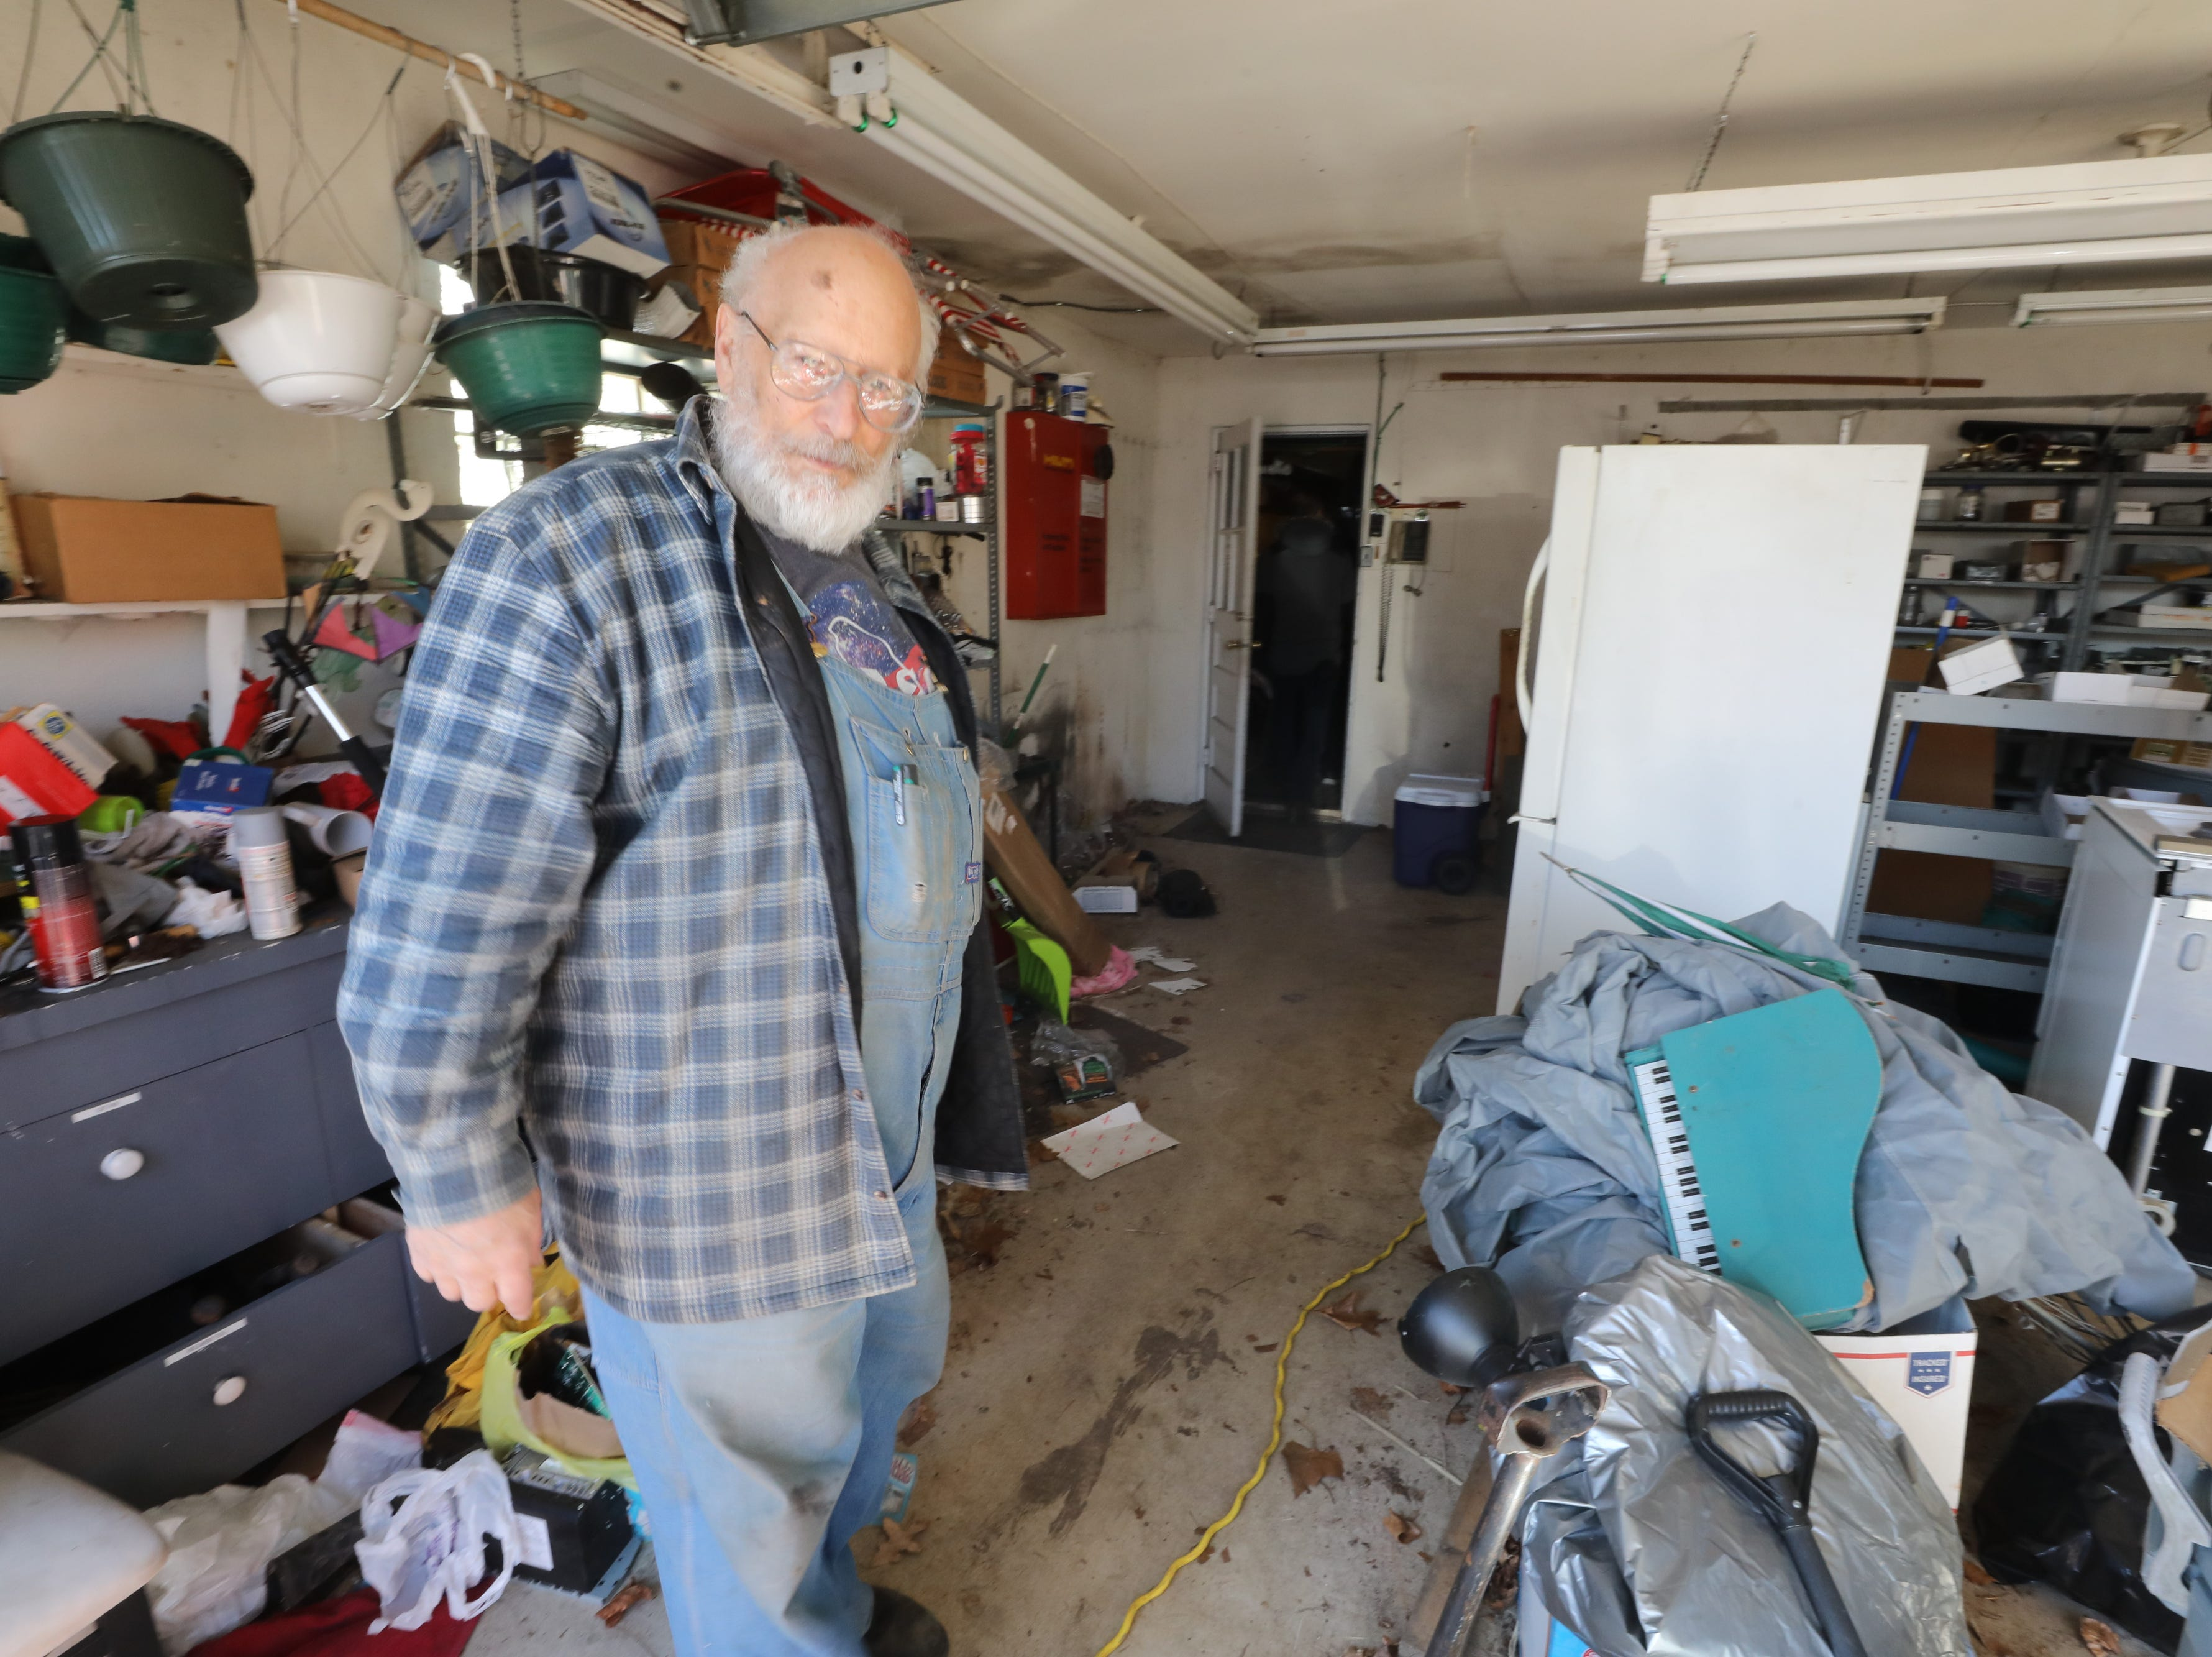 Charles D'Alessandro in the garage of the home he has lived in for the past 15 years. He is being evicted from the home on March 19, 2019, after failing to pay the mortgage for the past 10 years.